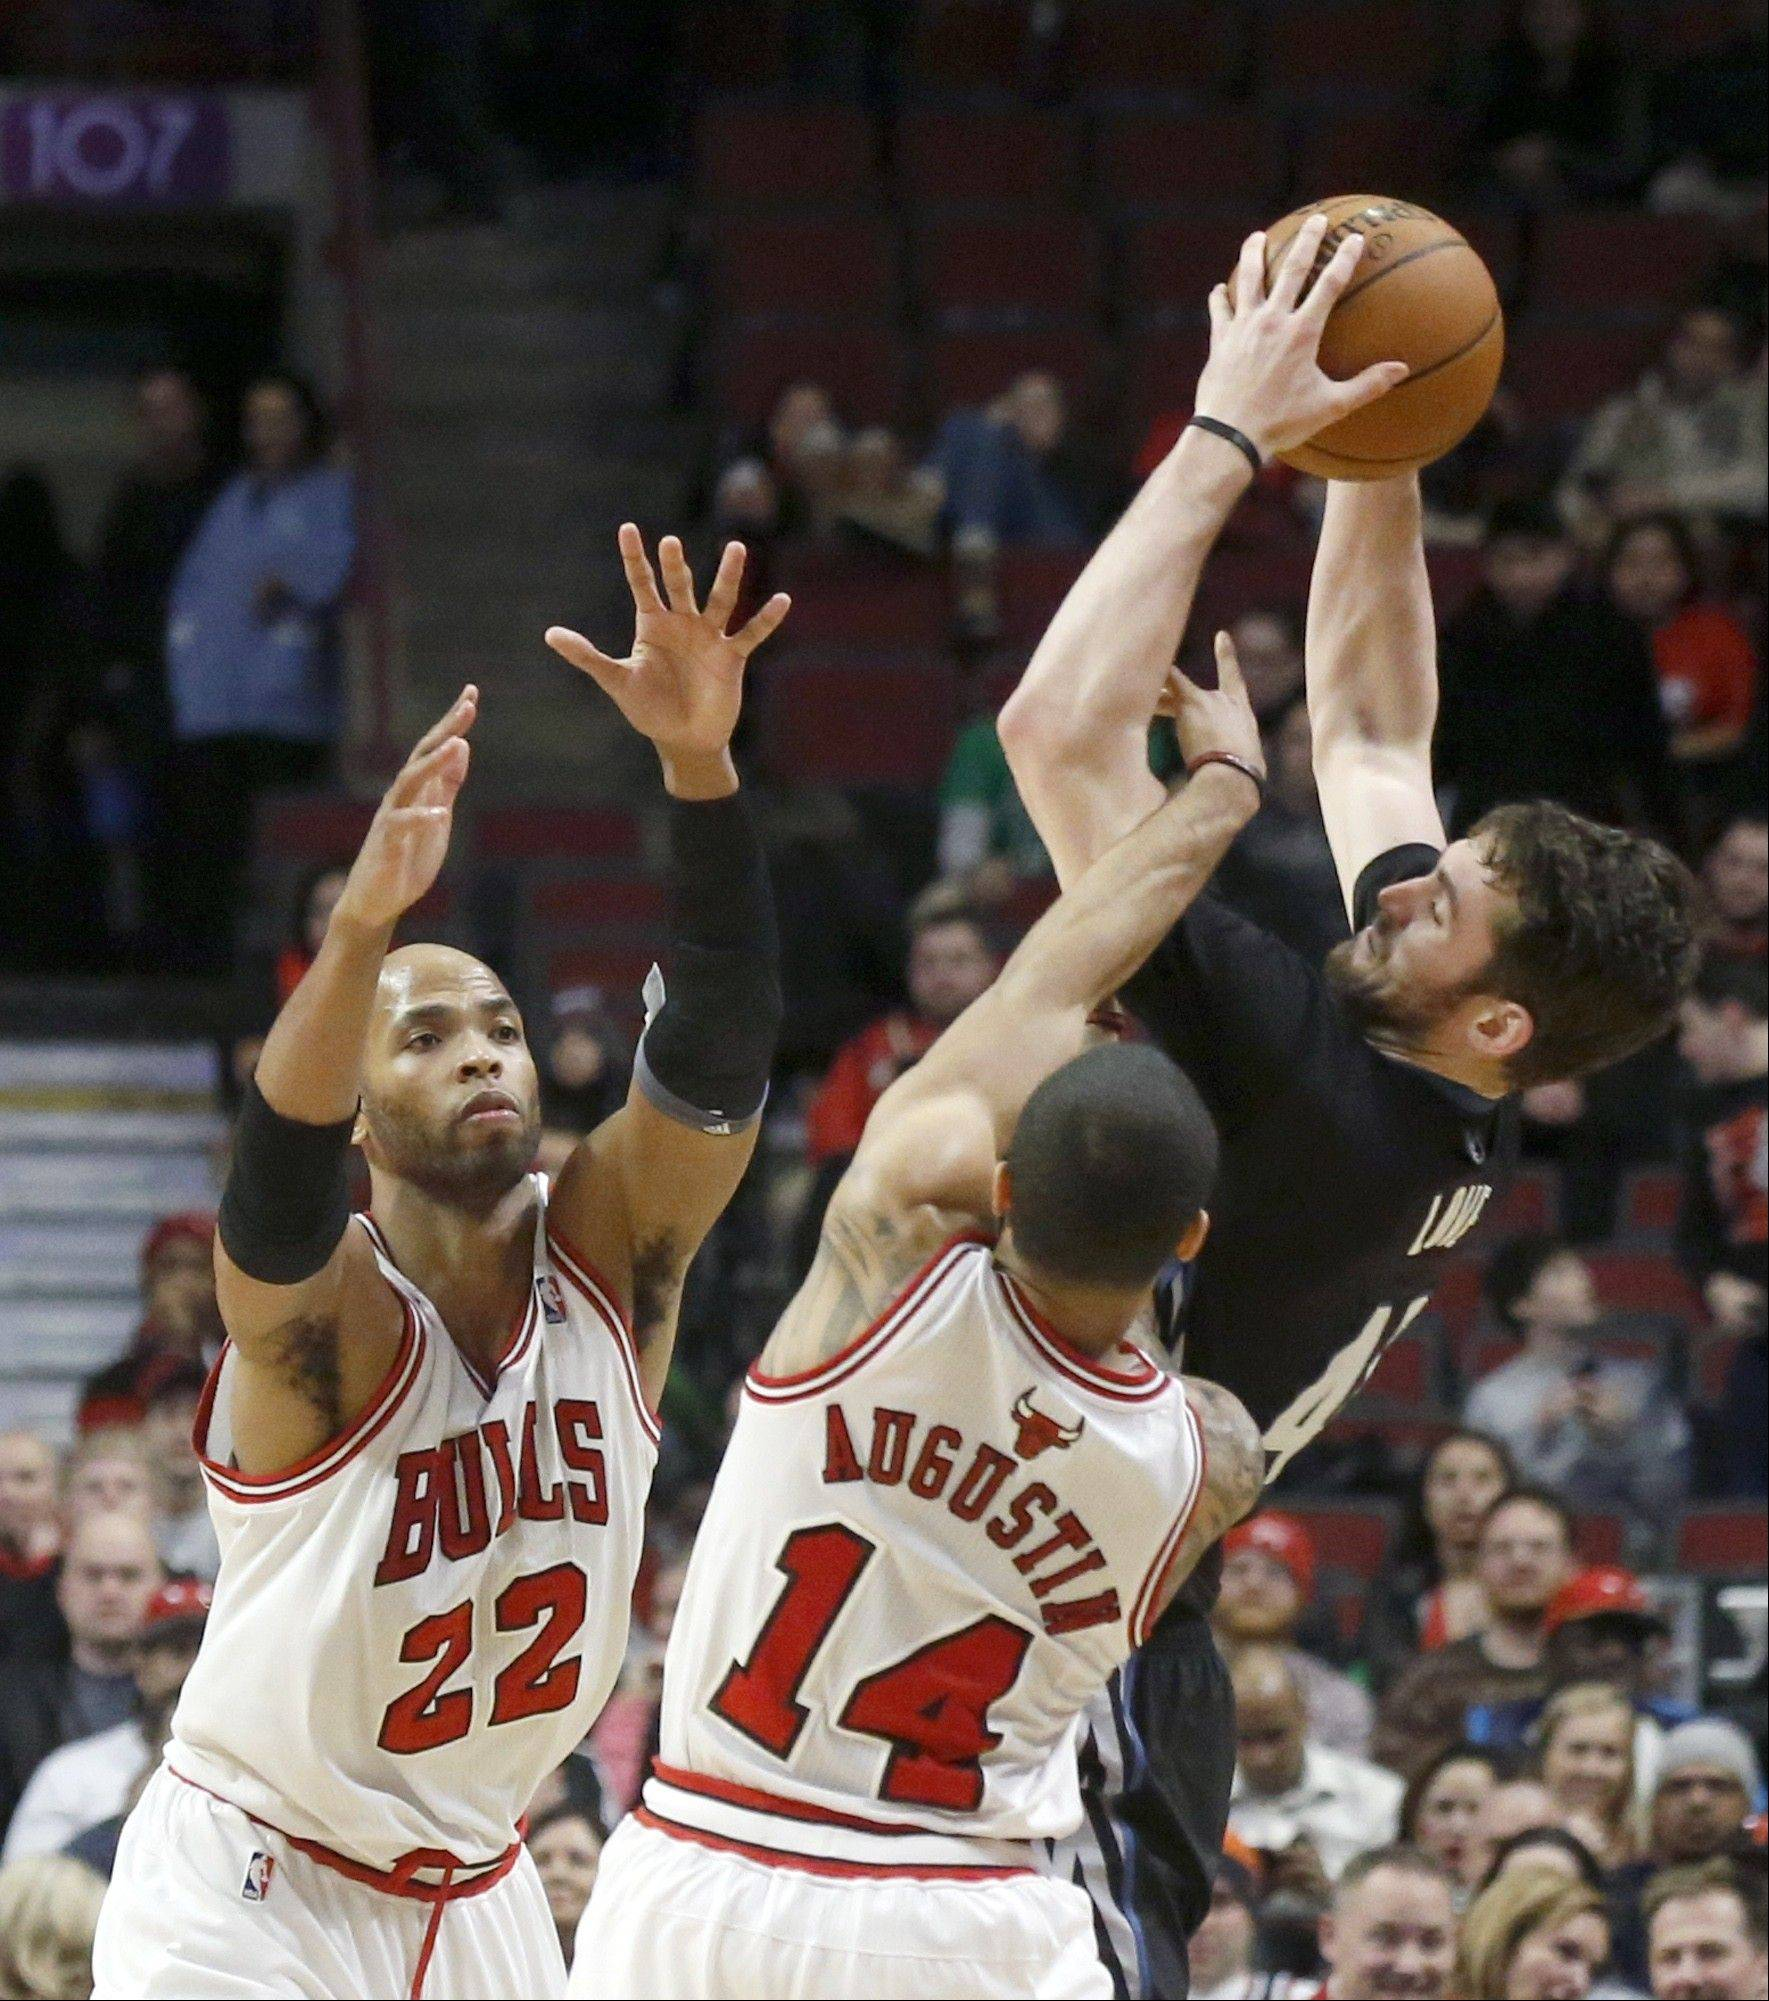 The Timberwolves� Kevin Love is fouled by Bulls guard D.J. Augustin as Taj Gibson also defends during the second half Monday night. Love finished with 31 points.